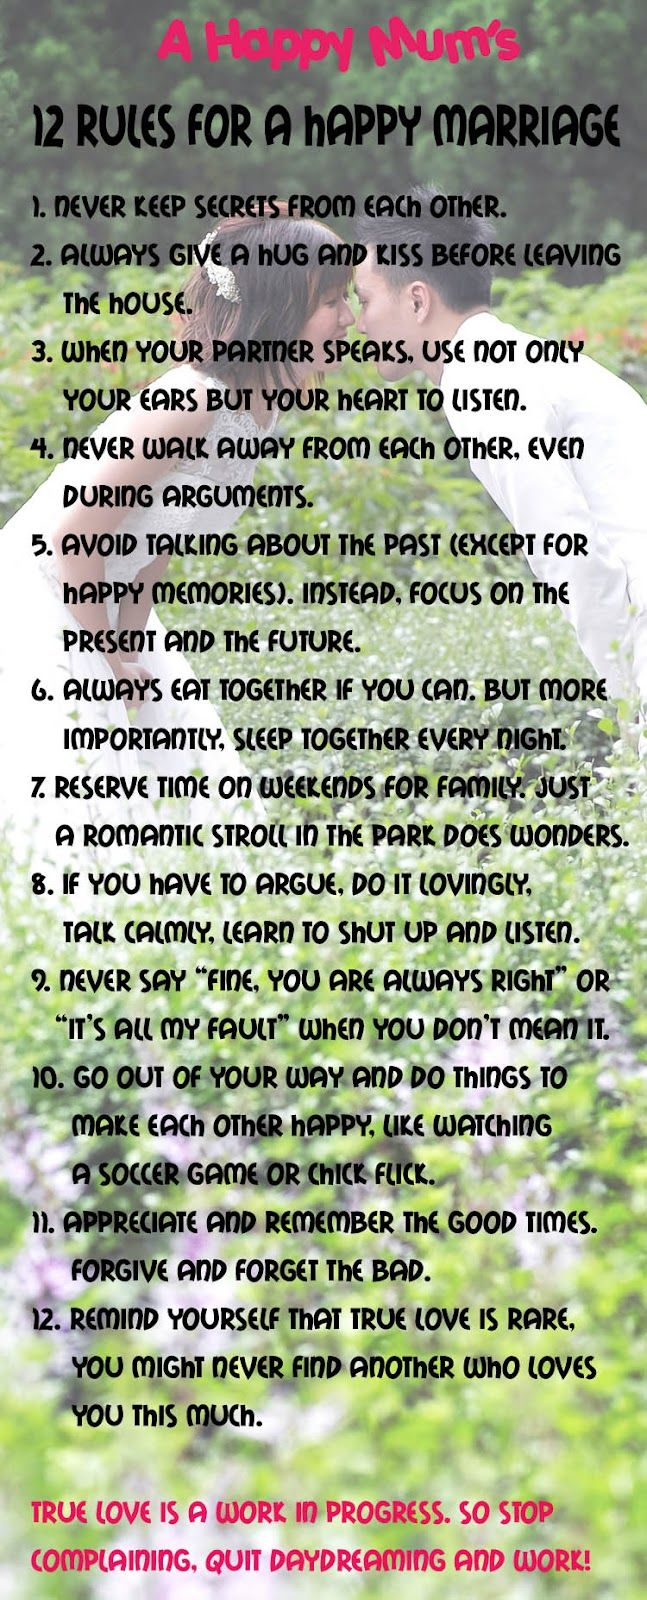 A Happy Mum: 12 rules for a happy marriage